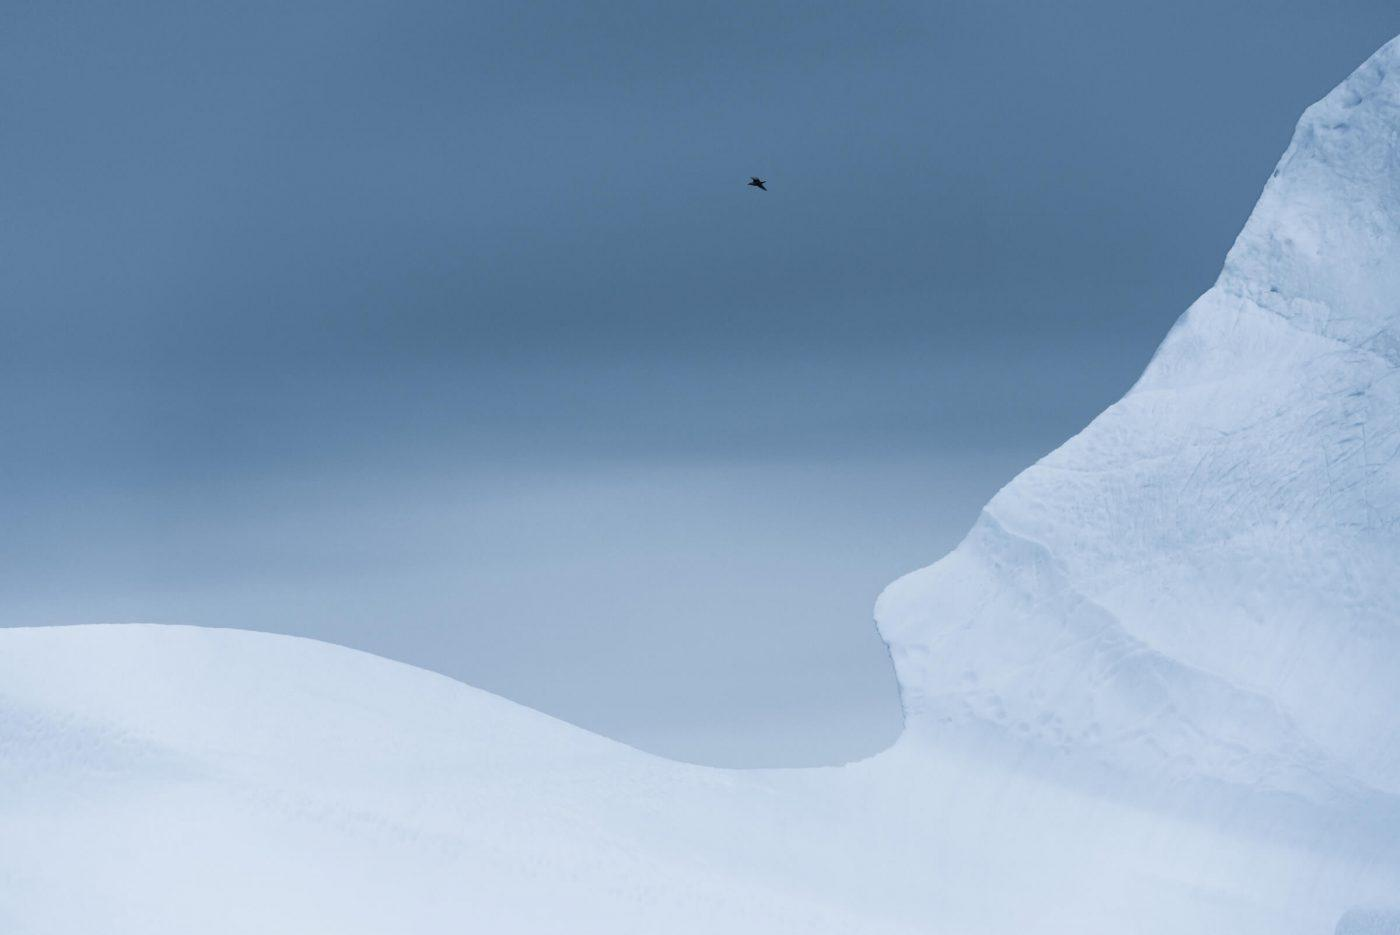 A personal favorite of mine from the Greenland trip. I just love the simplicity and cold hues of the image. There were a lot of fulmars flying around me, so I immediately knew that I wanted to include one of them in the frame. By Stian Klo